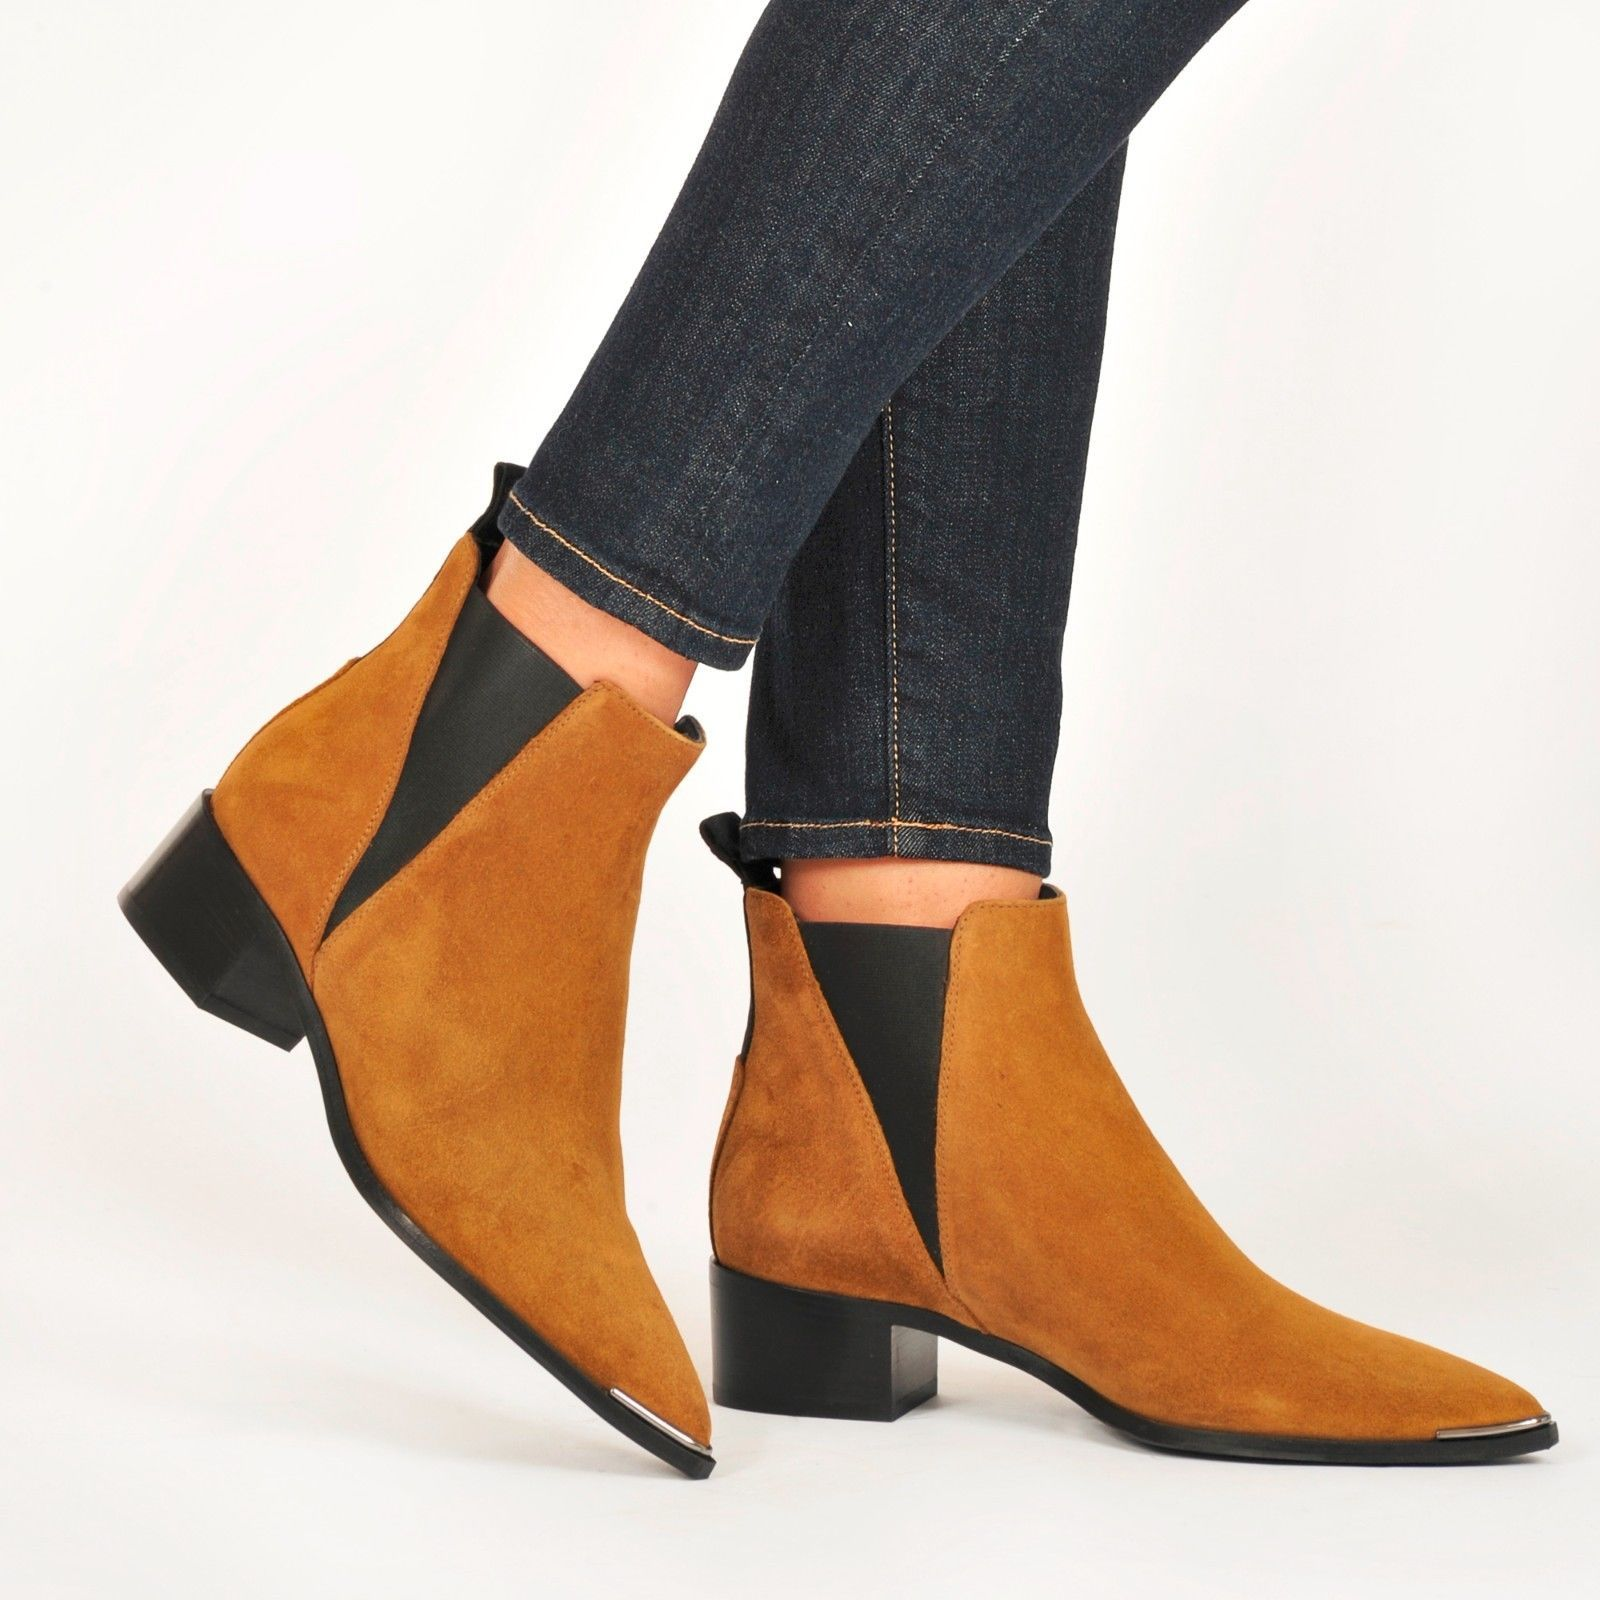 a4cd7ef347 New ACNE STUDIOS ~ Jensen' Pointy Toe Bootie Shoes, Camel Suede, EUR 37